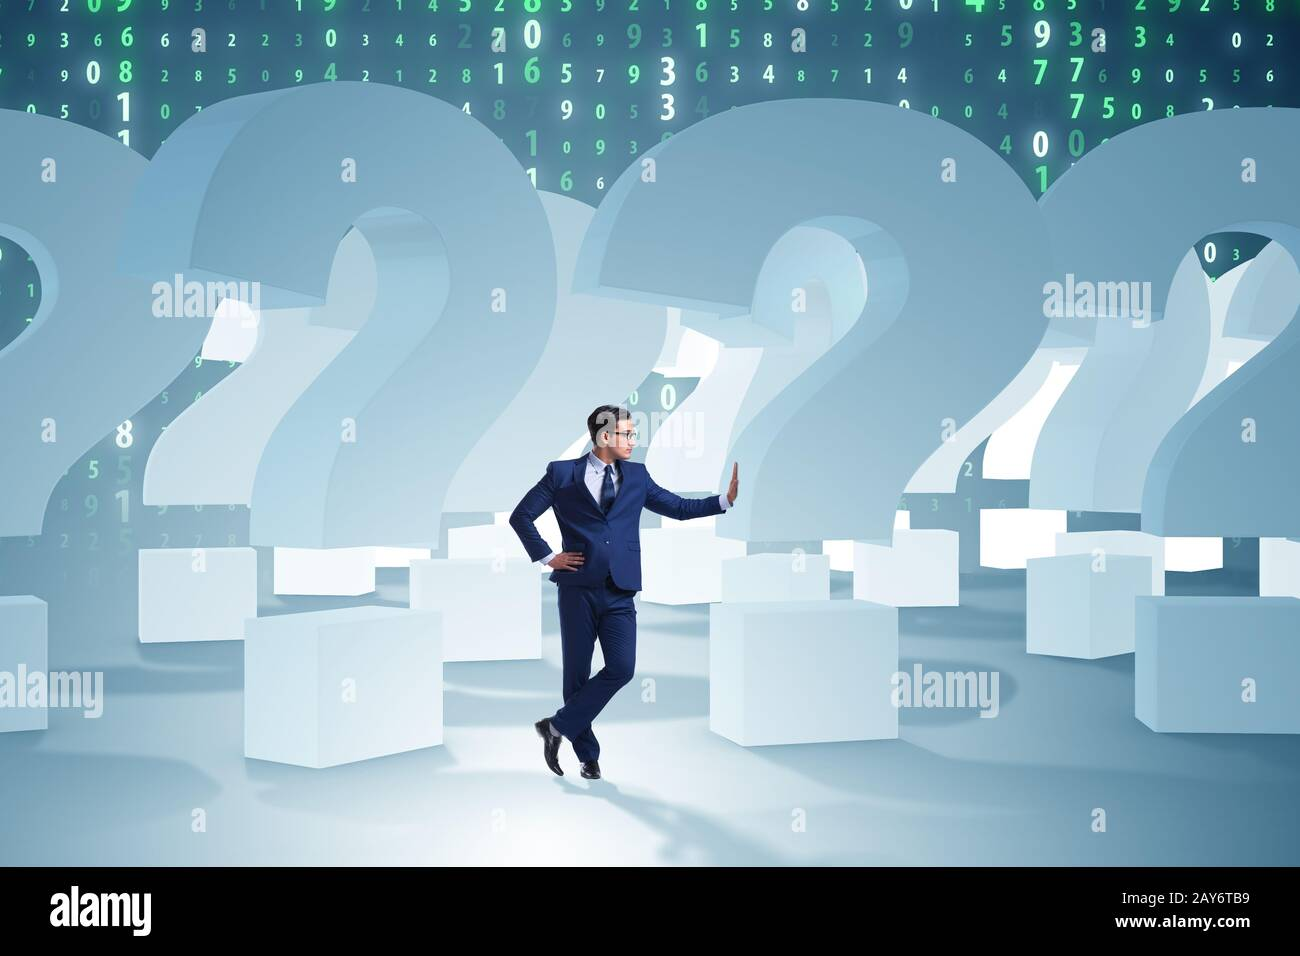 Businessman in uncertainty concept with question marks Stock Photo